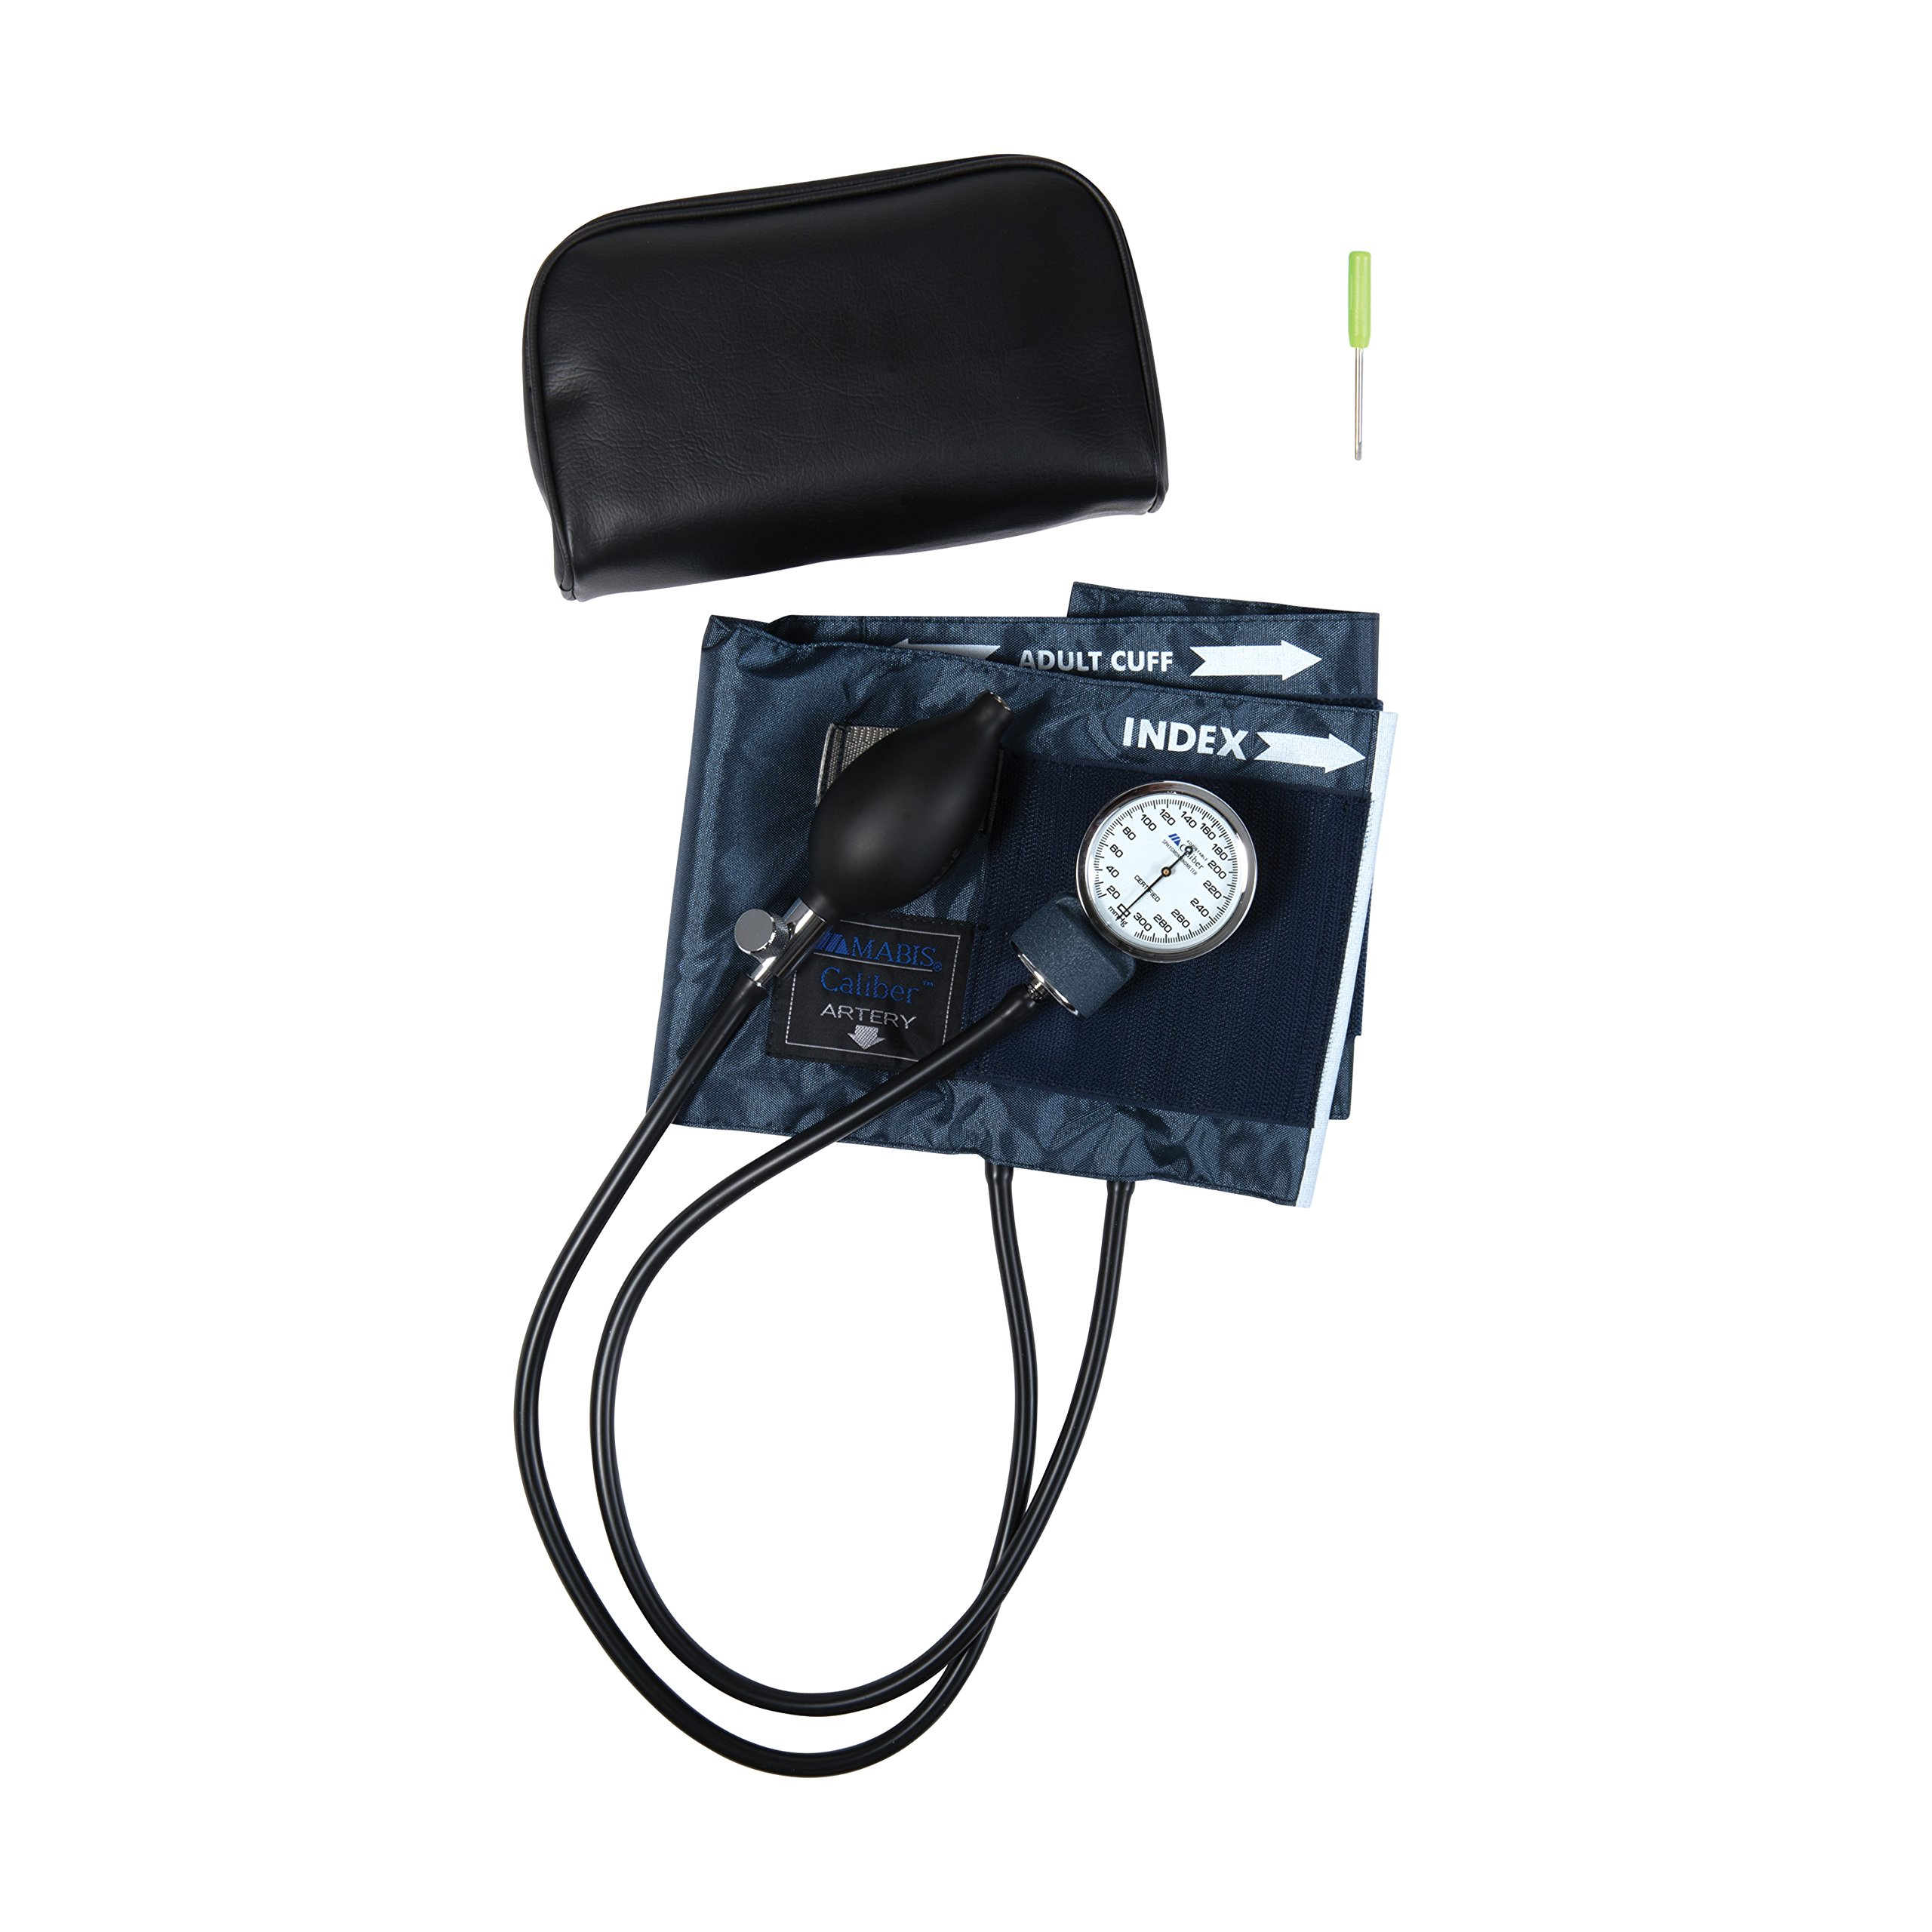 MABIS CALIBER Series Adjustable Aneroid Sphygmomanometer with Mini Screwdriver, Calibrated Blue Nylon Cuff and Deluxe Carrying Case, For Professional or Home Use, Adult, Cuff Size 11 to 16.4 Inches, Blue by MABIS DMI Healthcare (Image #2)